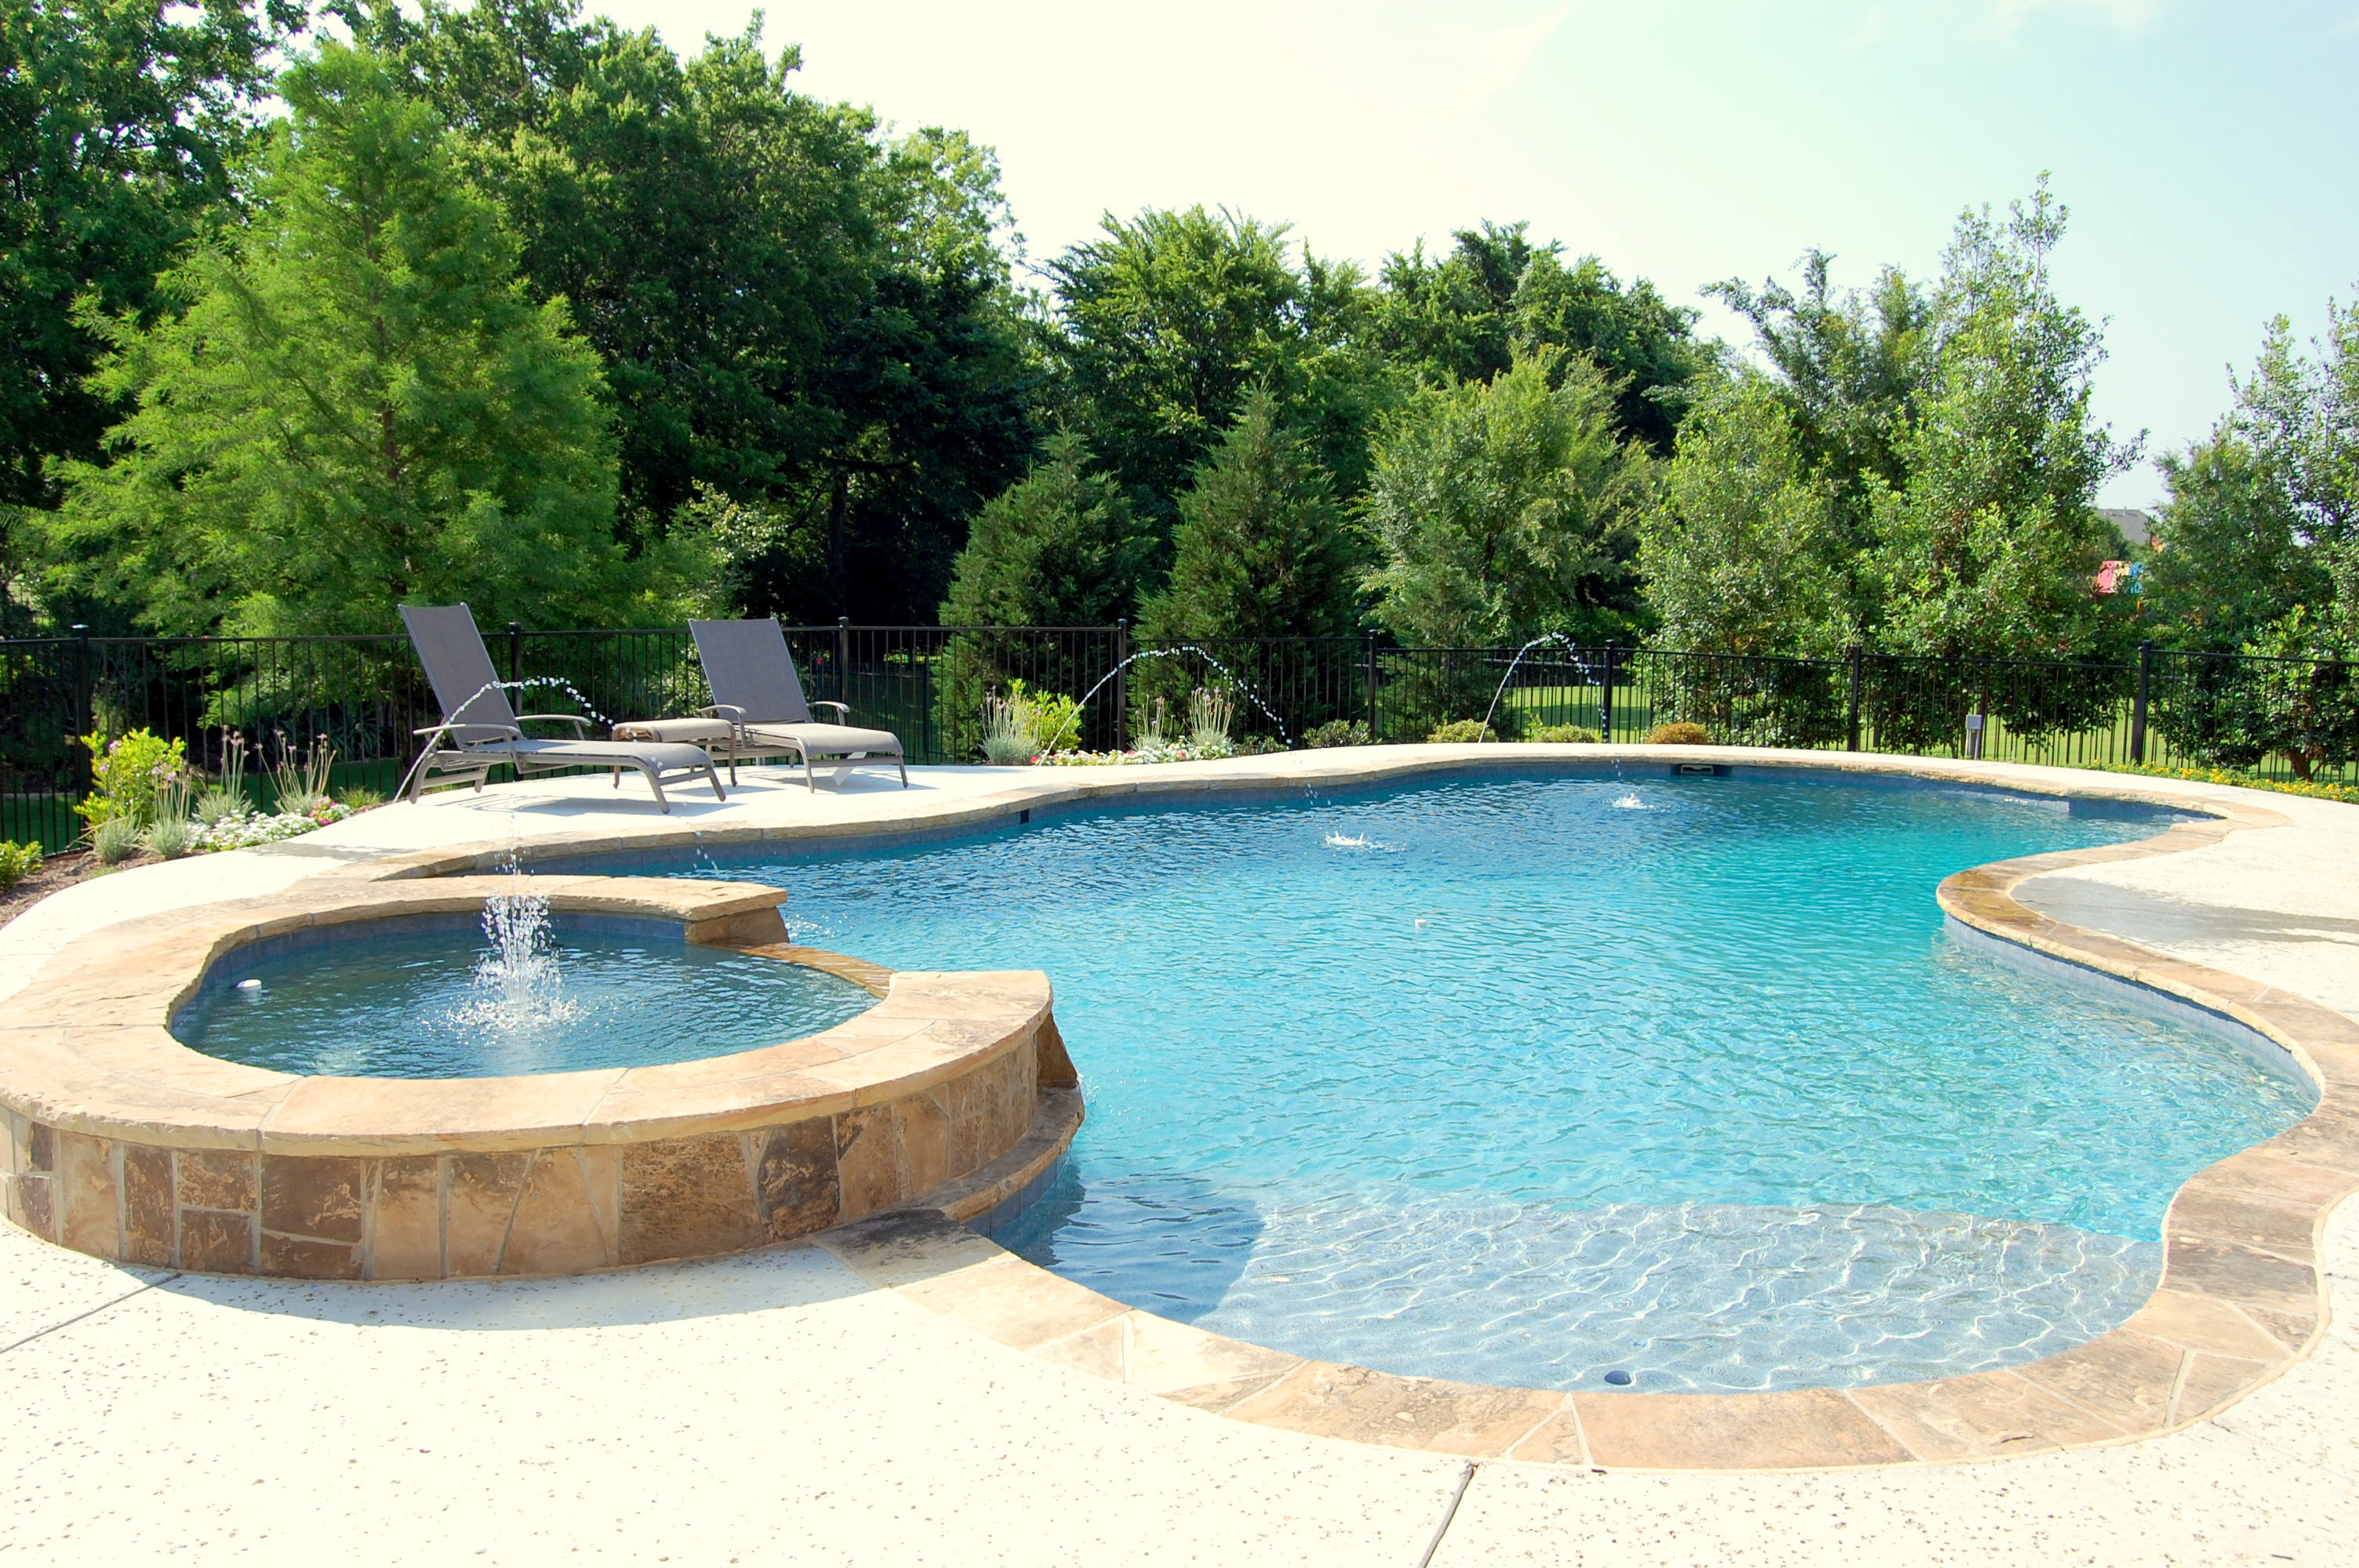 Spa and swimming pool kgnv design on vine for Designer spas and pools